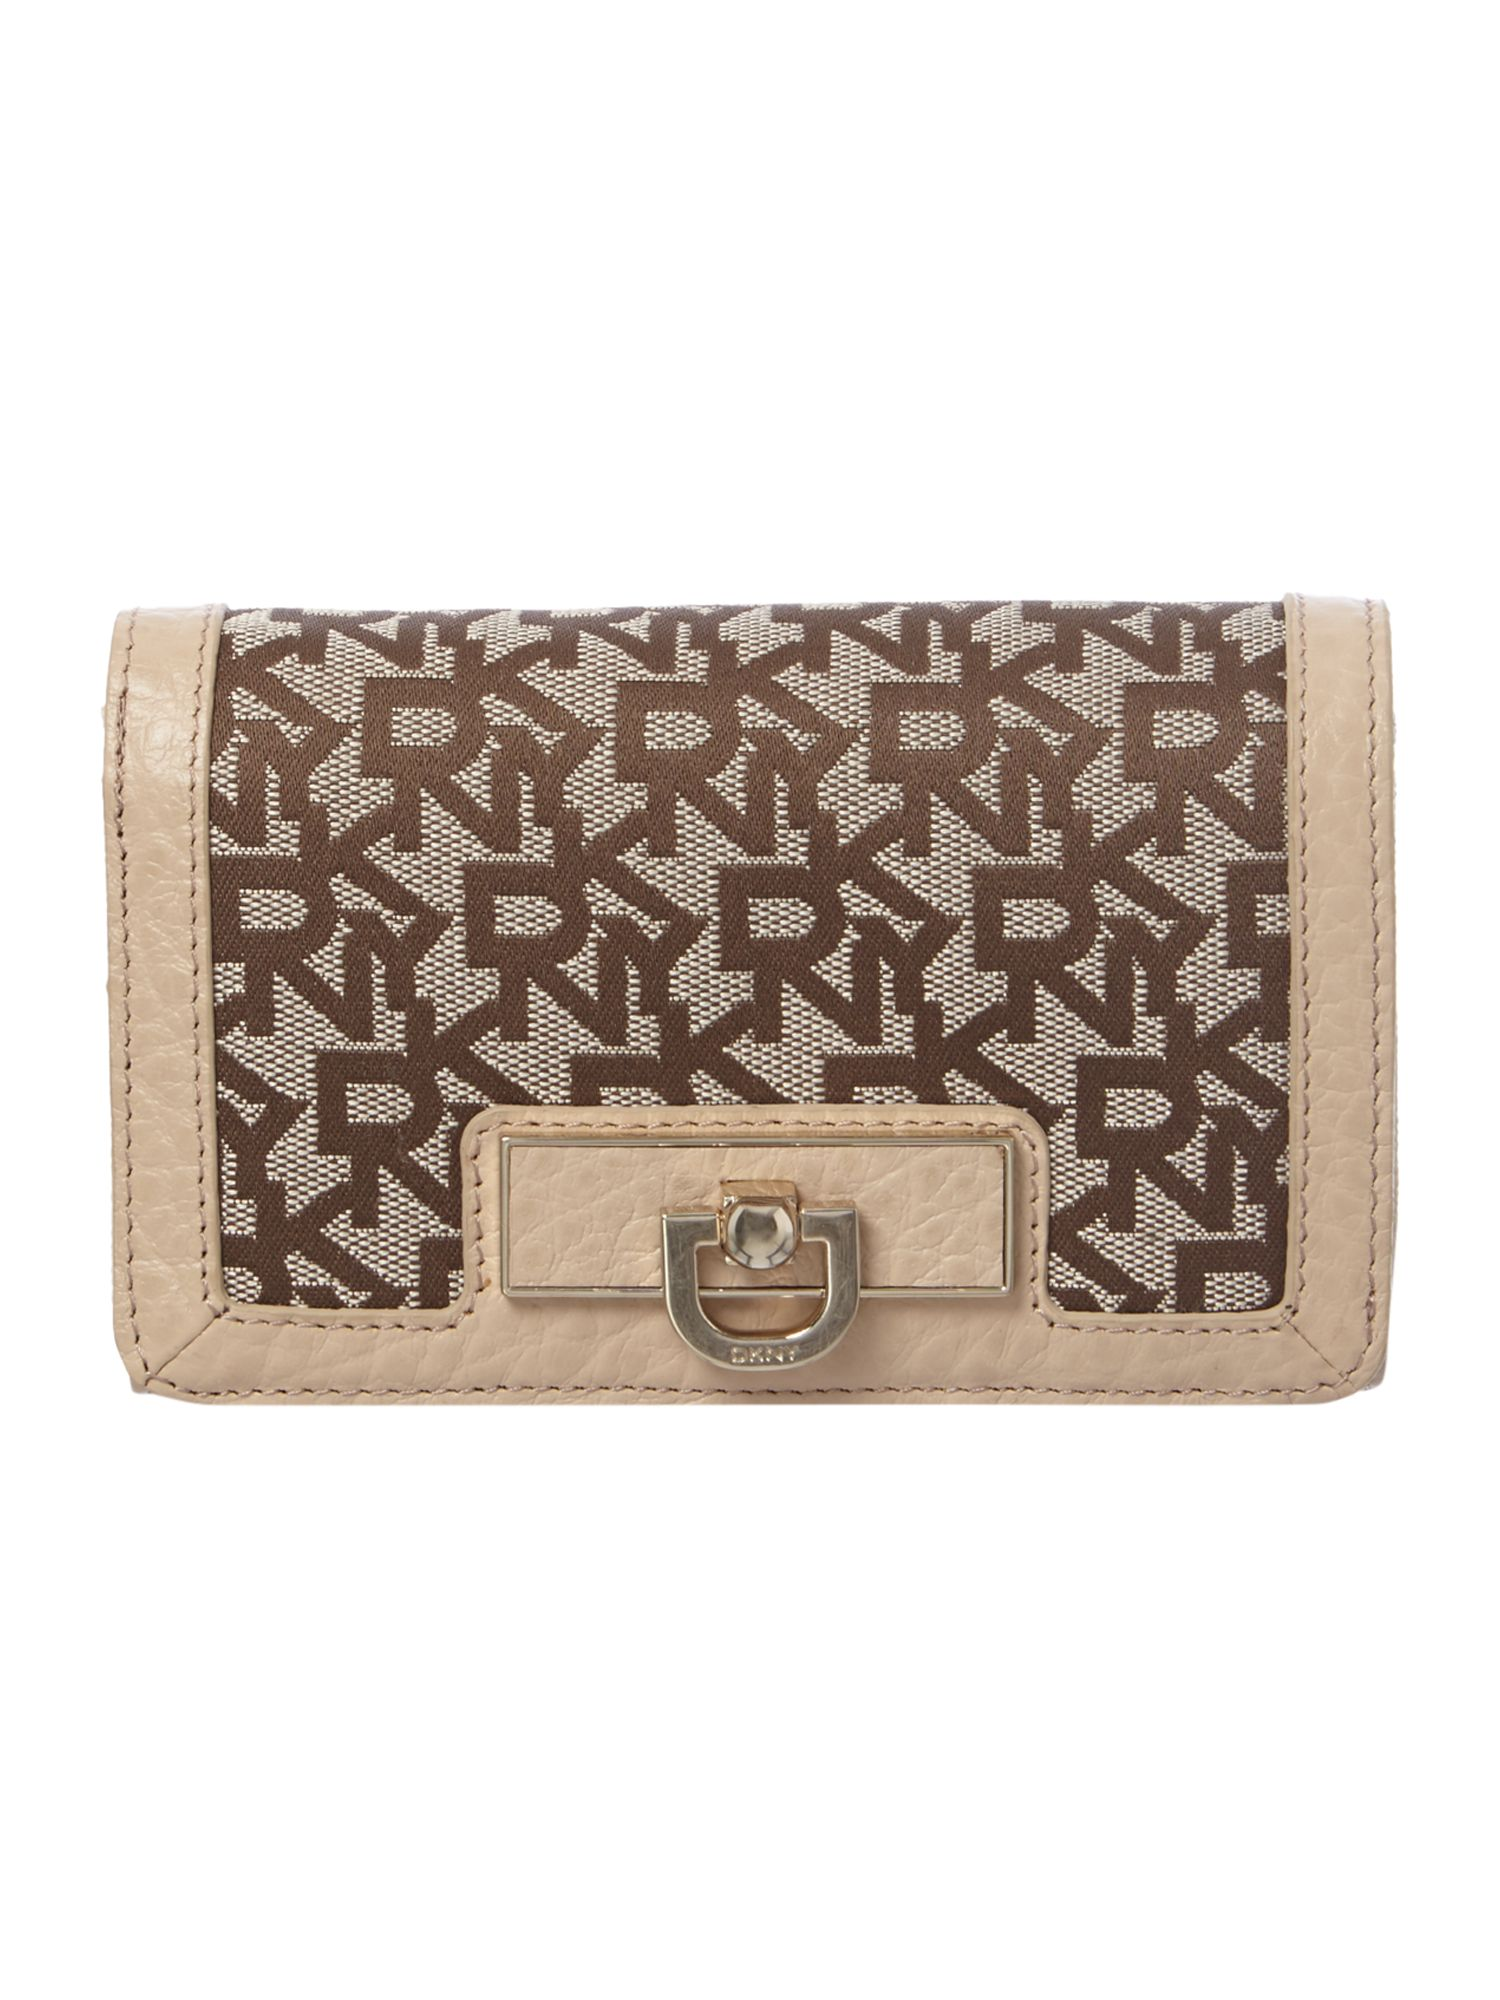 French Grain tan flap over purse